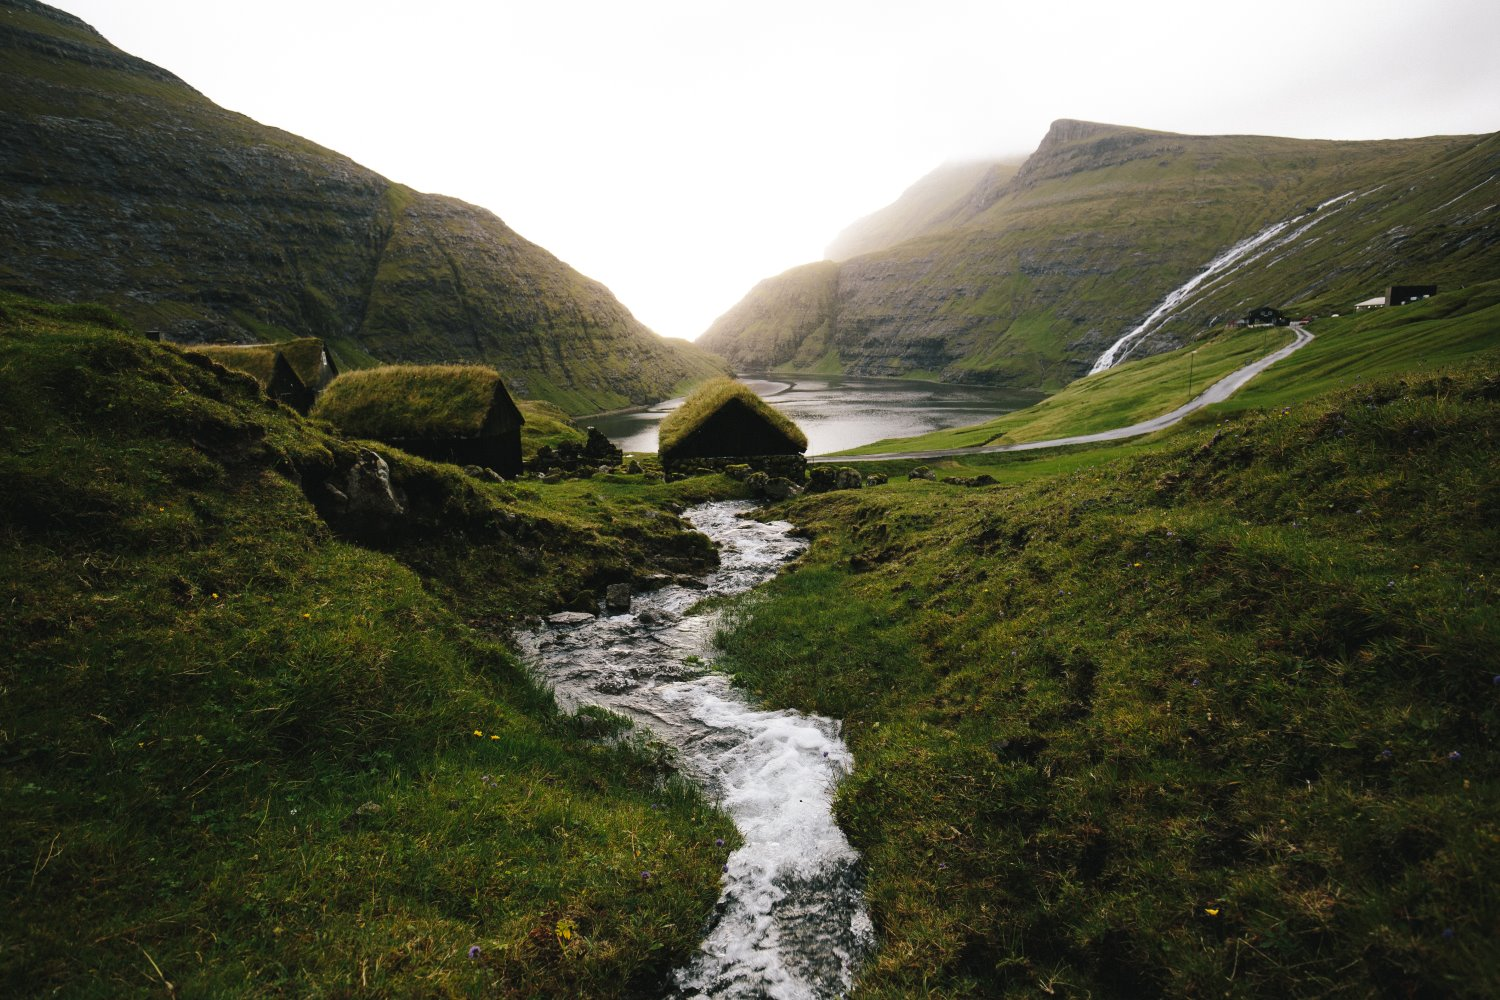 river flowing away as leading lines in a mountainous landscape